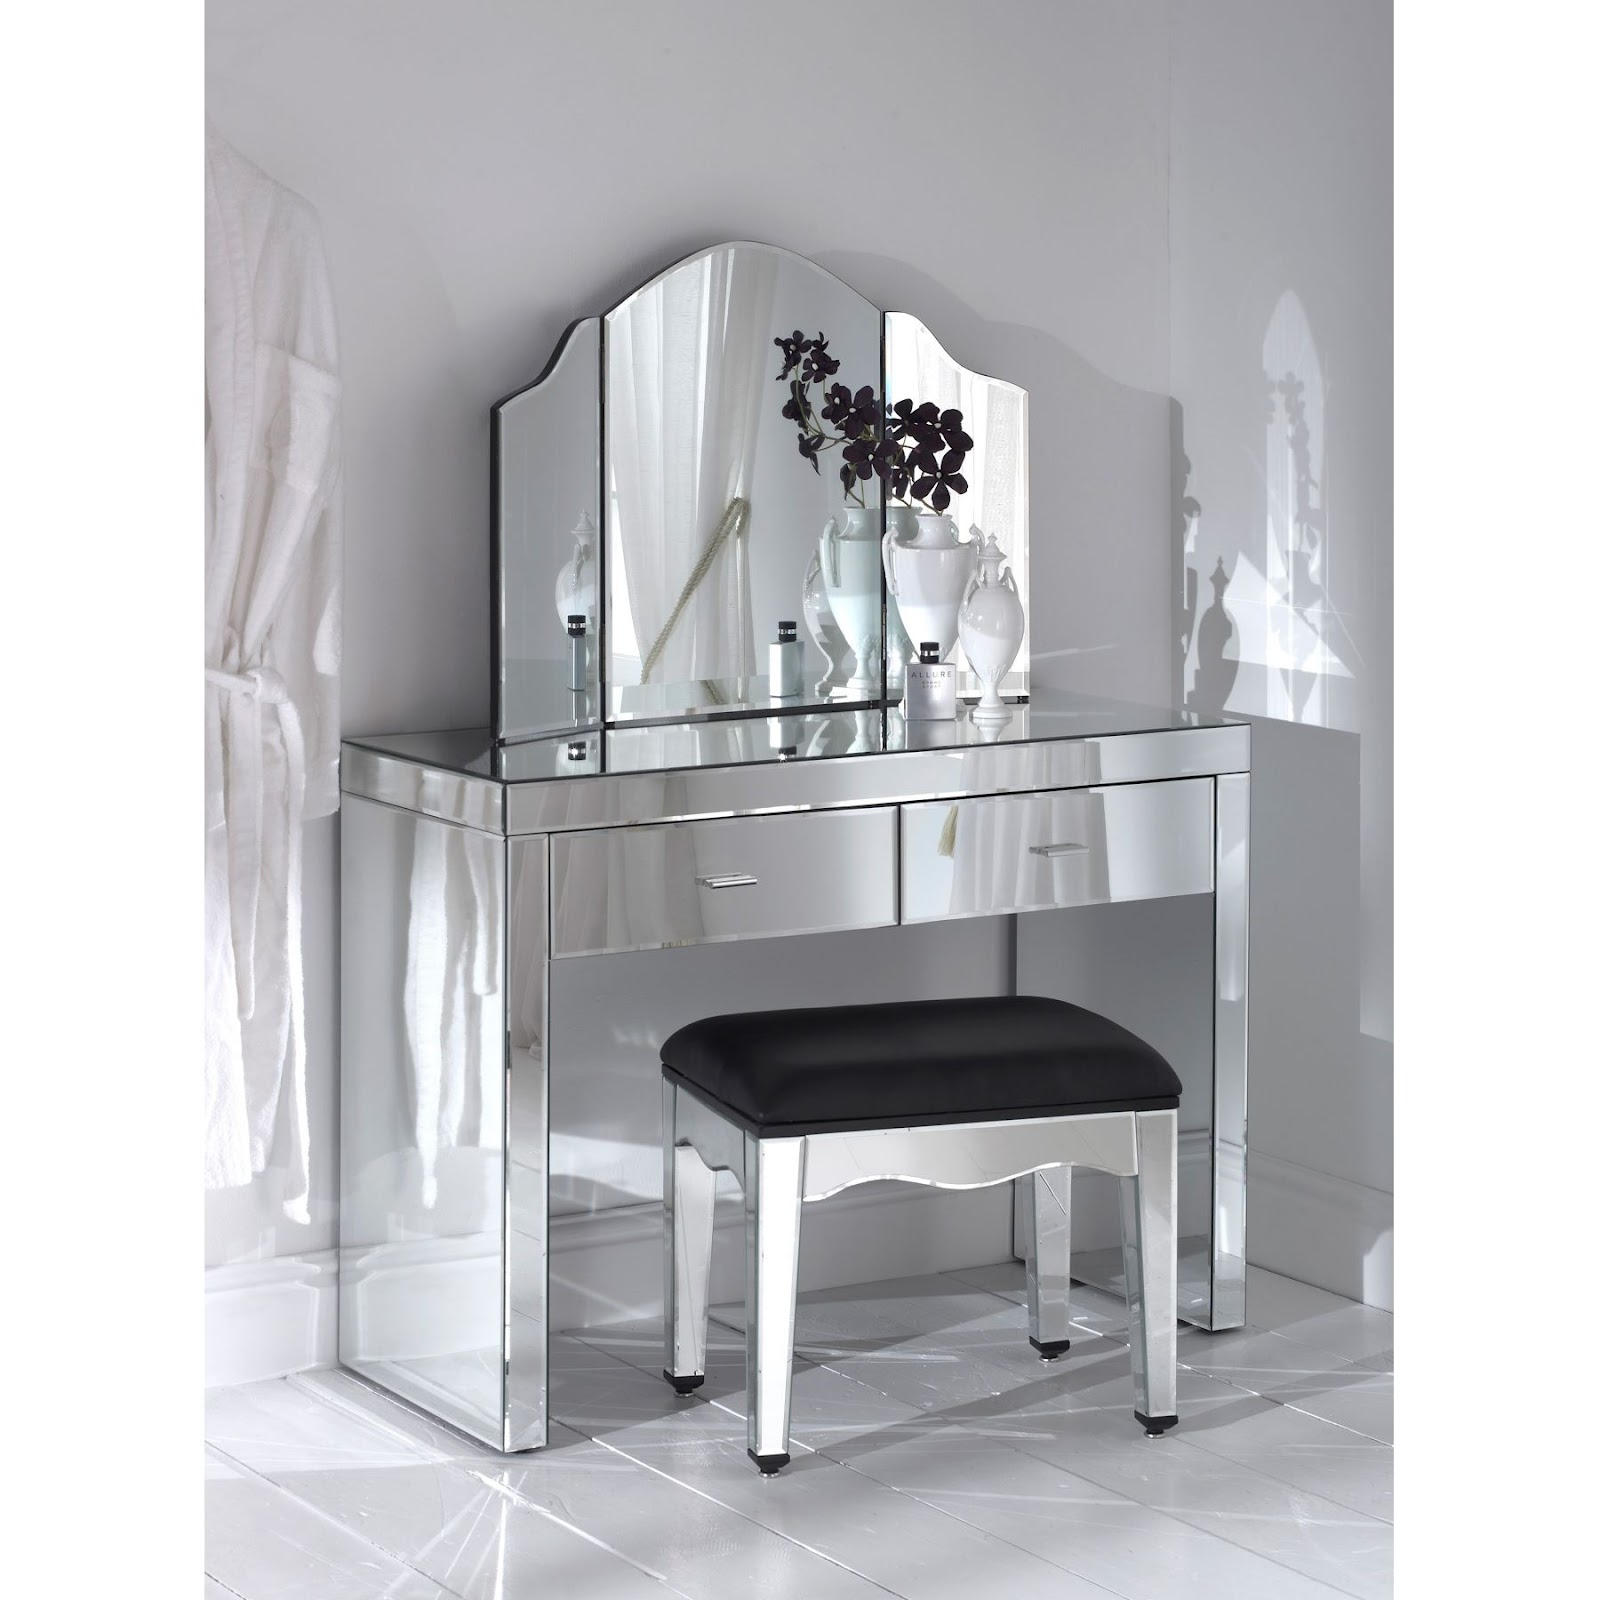 Modern dressing table furniture designs.. | An Interior Design